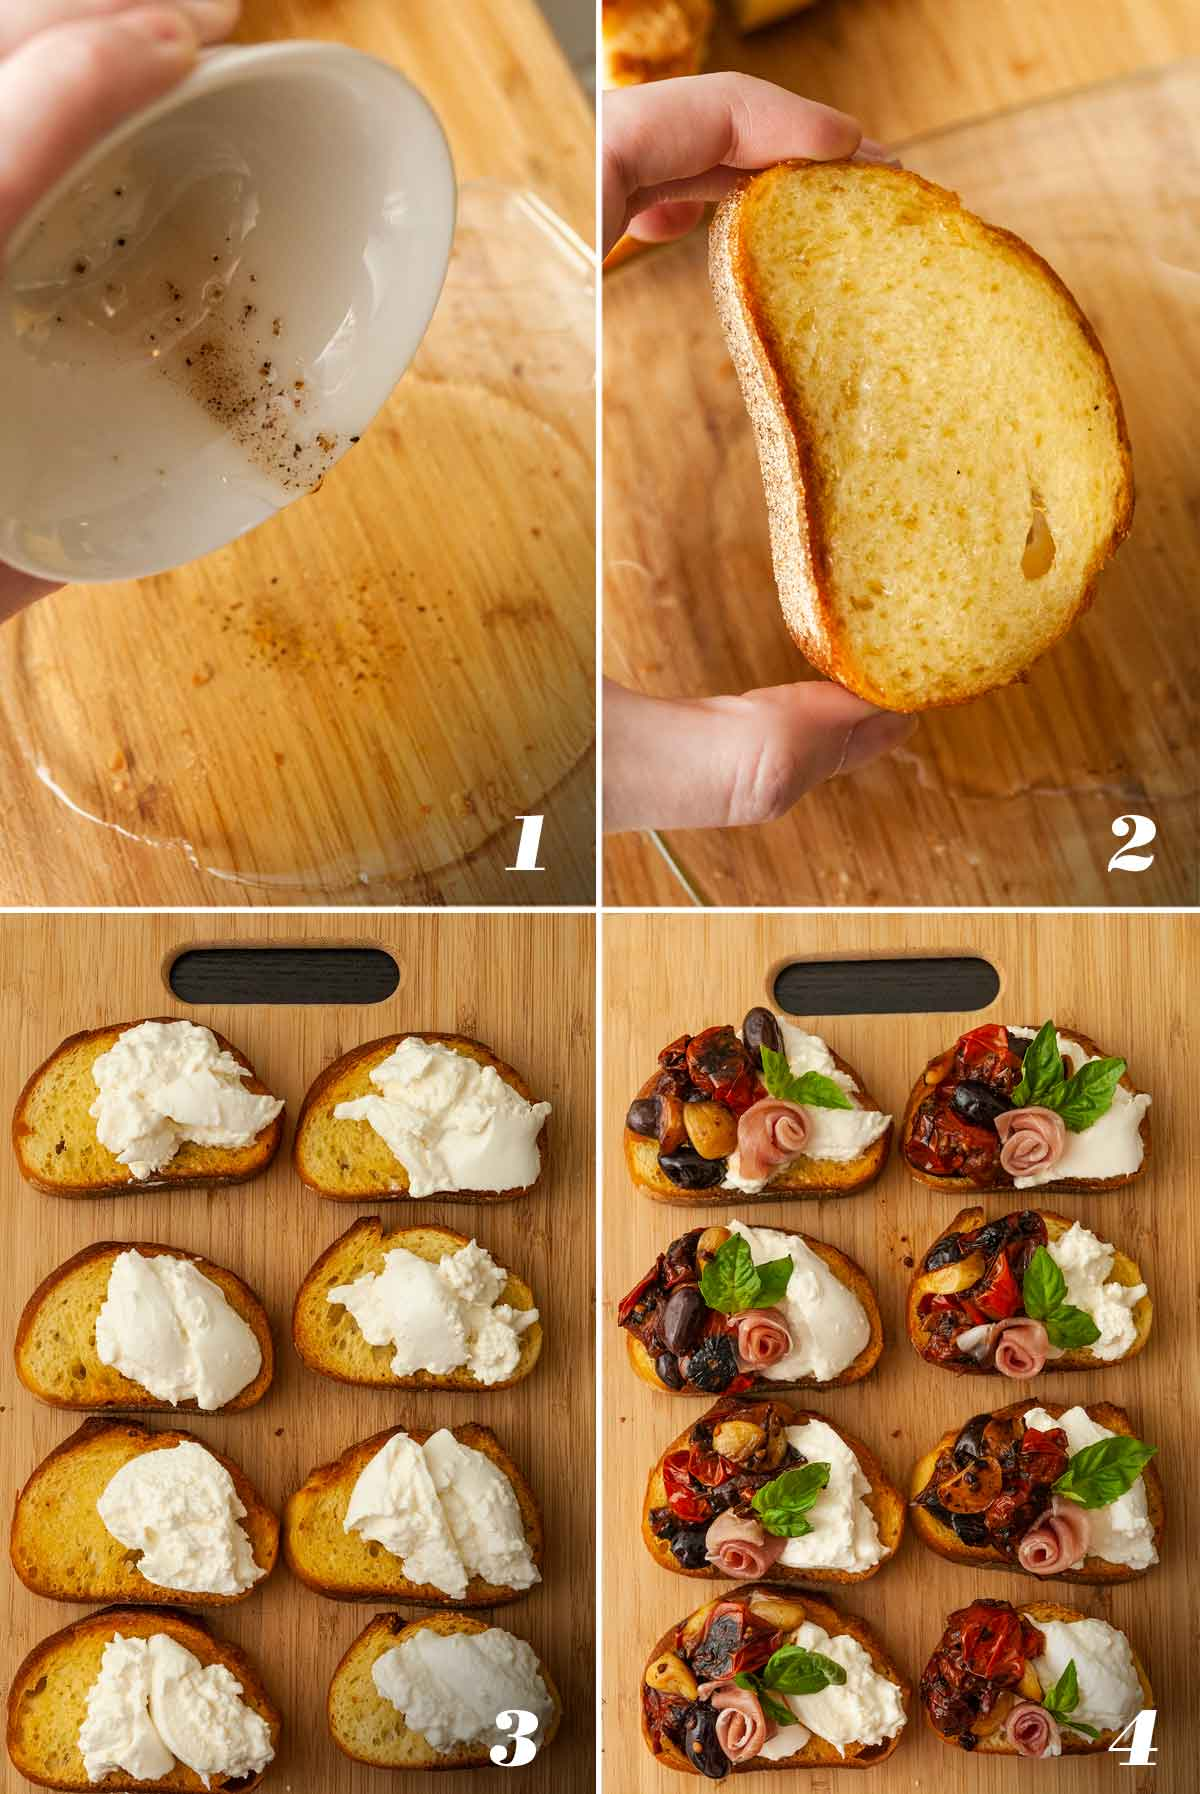 A collage of 4 numbered images showing how to assemble bruschetta.